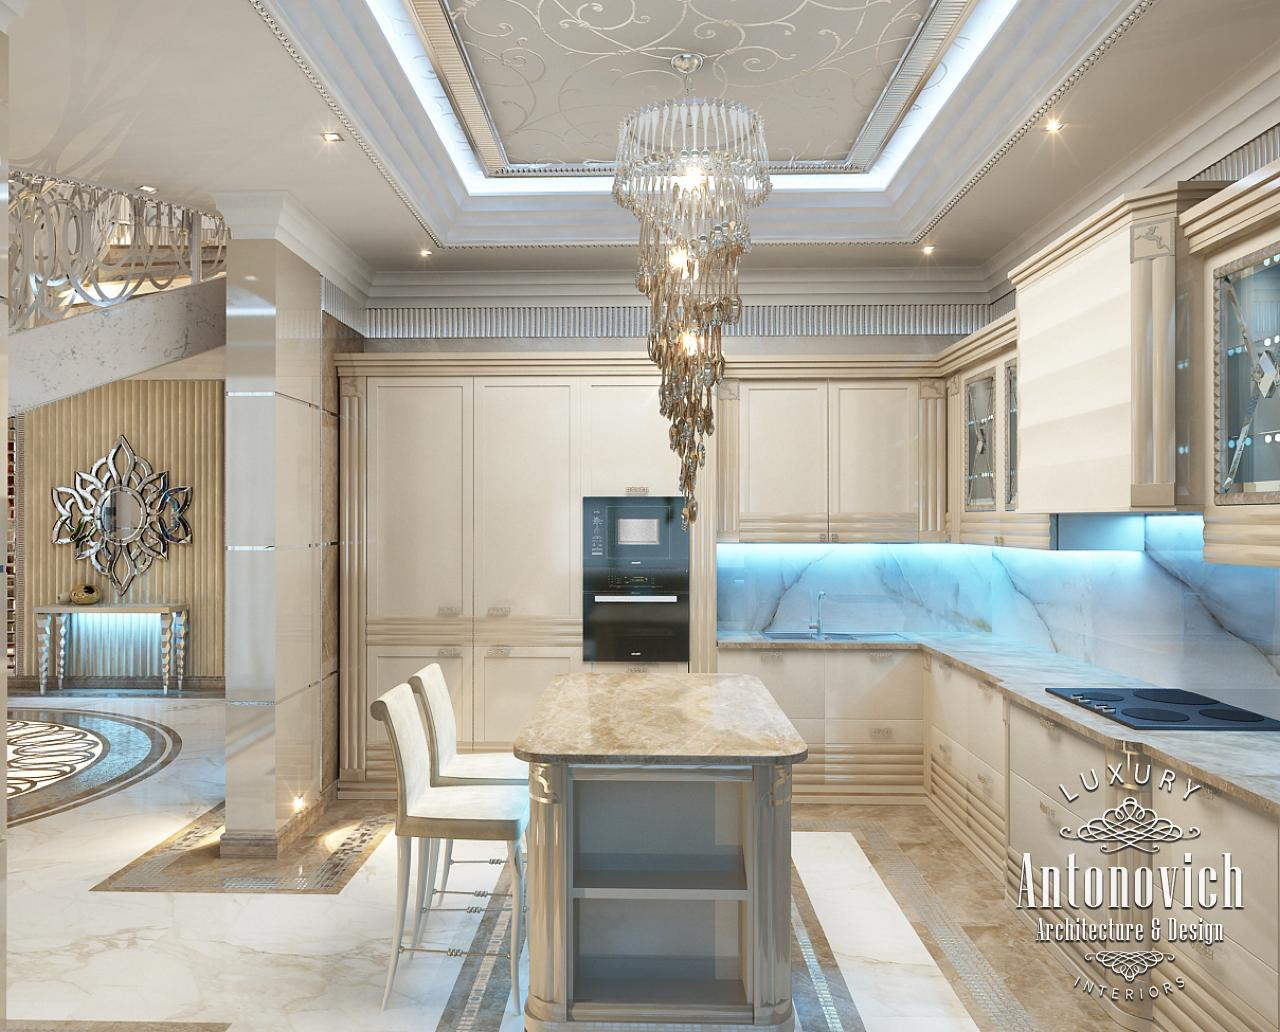 Luxury antonovich design uae luxury interior design dubai for Interieur design